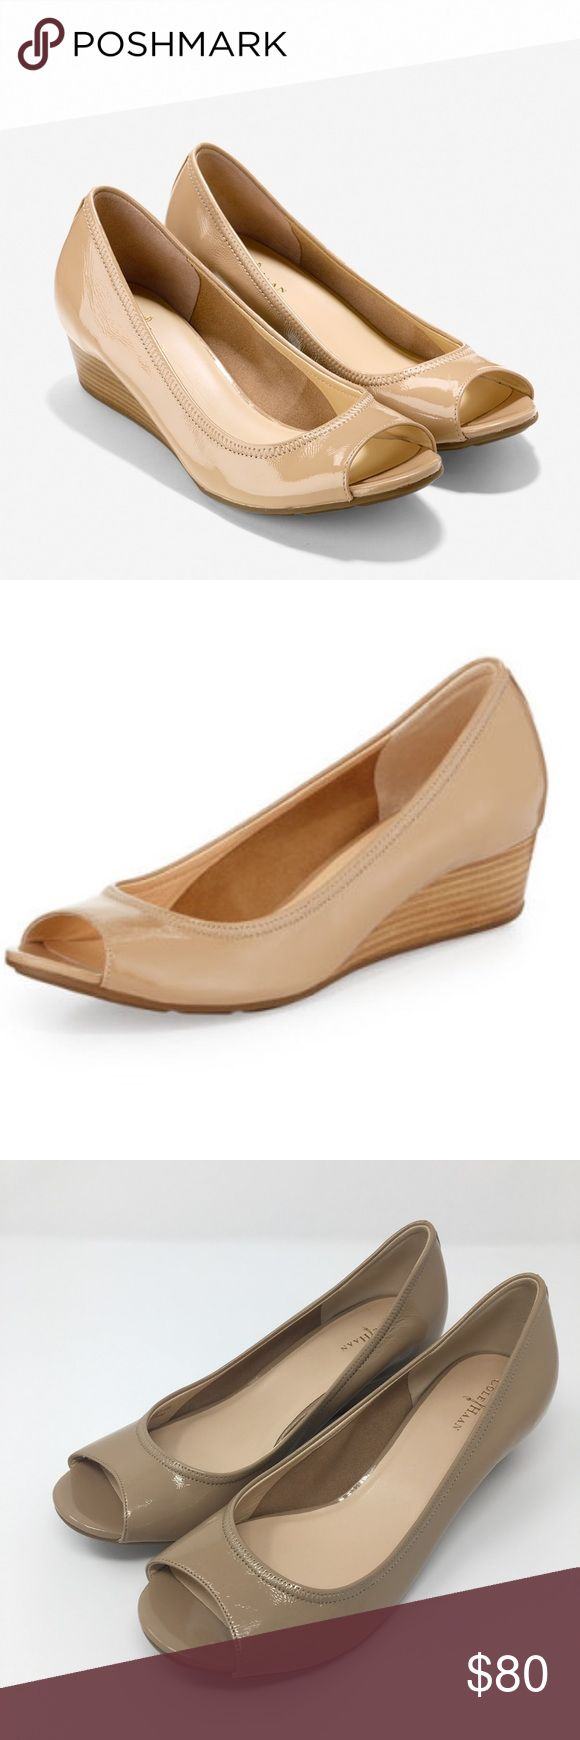 Cole Haan Tali Peep Toe Wedges Nike Air Size 10 Cole Haan Tali Peep Toe Wedge Leather Nike Air Size 10 Nude Tan Heels Shoes  These beautiful Cole Haan Tali peep toe wedges are practically new. Worn inside to be tried on a couple times but never worn outside. See tiny marks on sole. Women's size 10. Nude/tan leather color. Nike Air technology. Heel is about 1.5 inches or 40 millimeters. Cole Haan Shoes Wedges